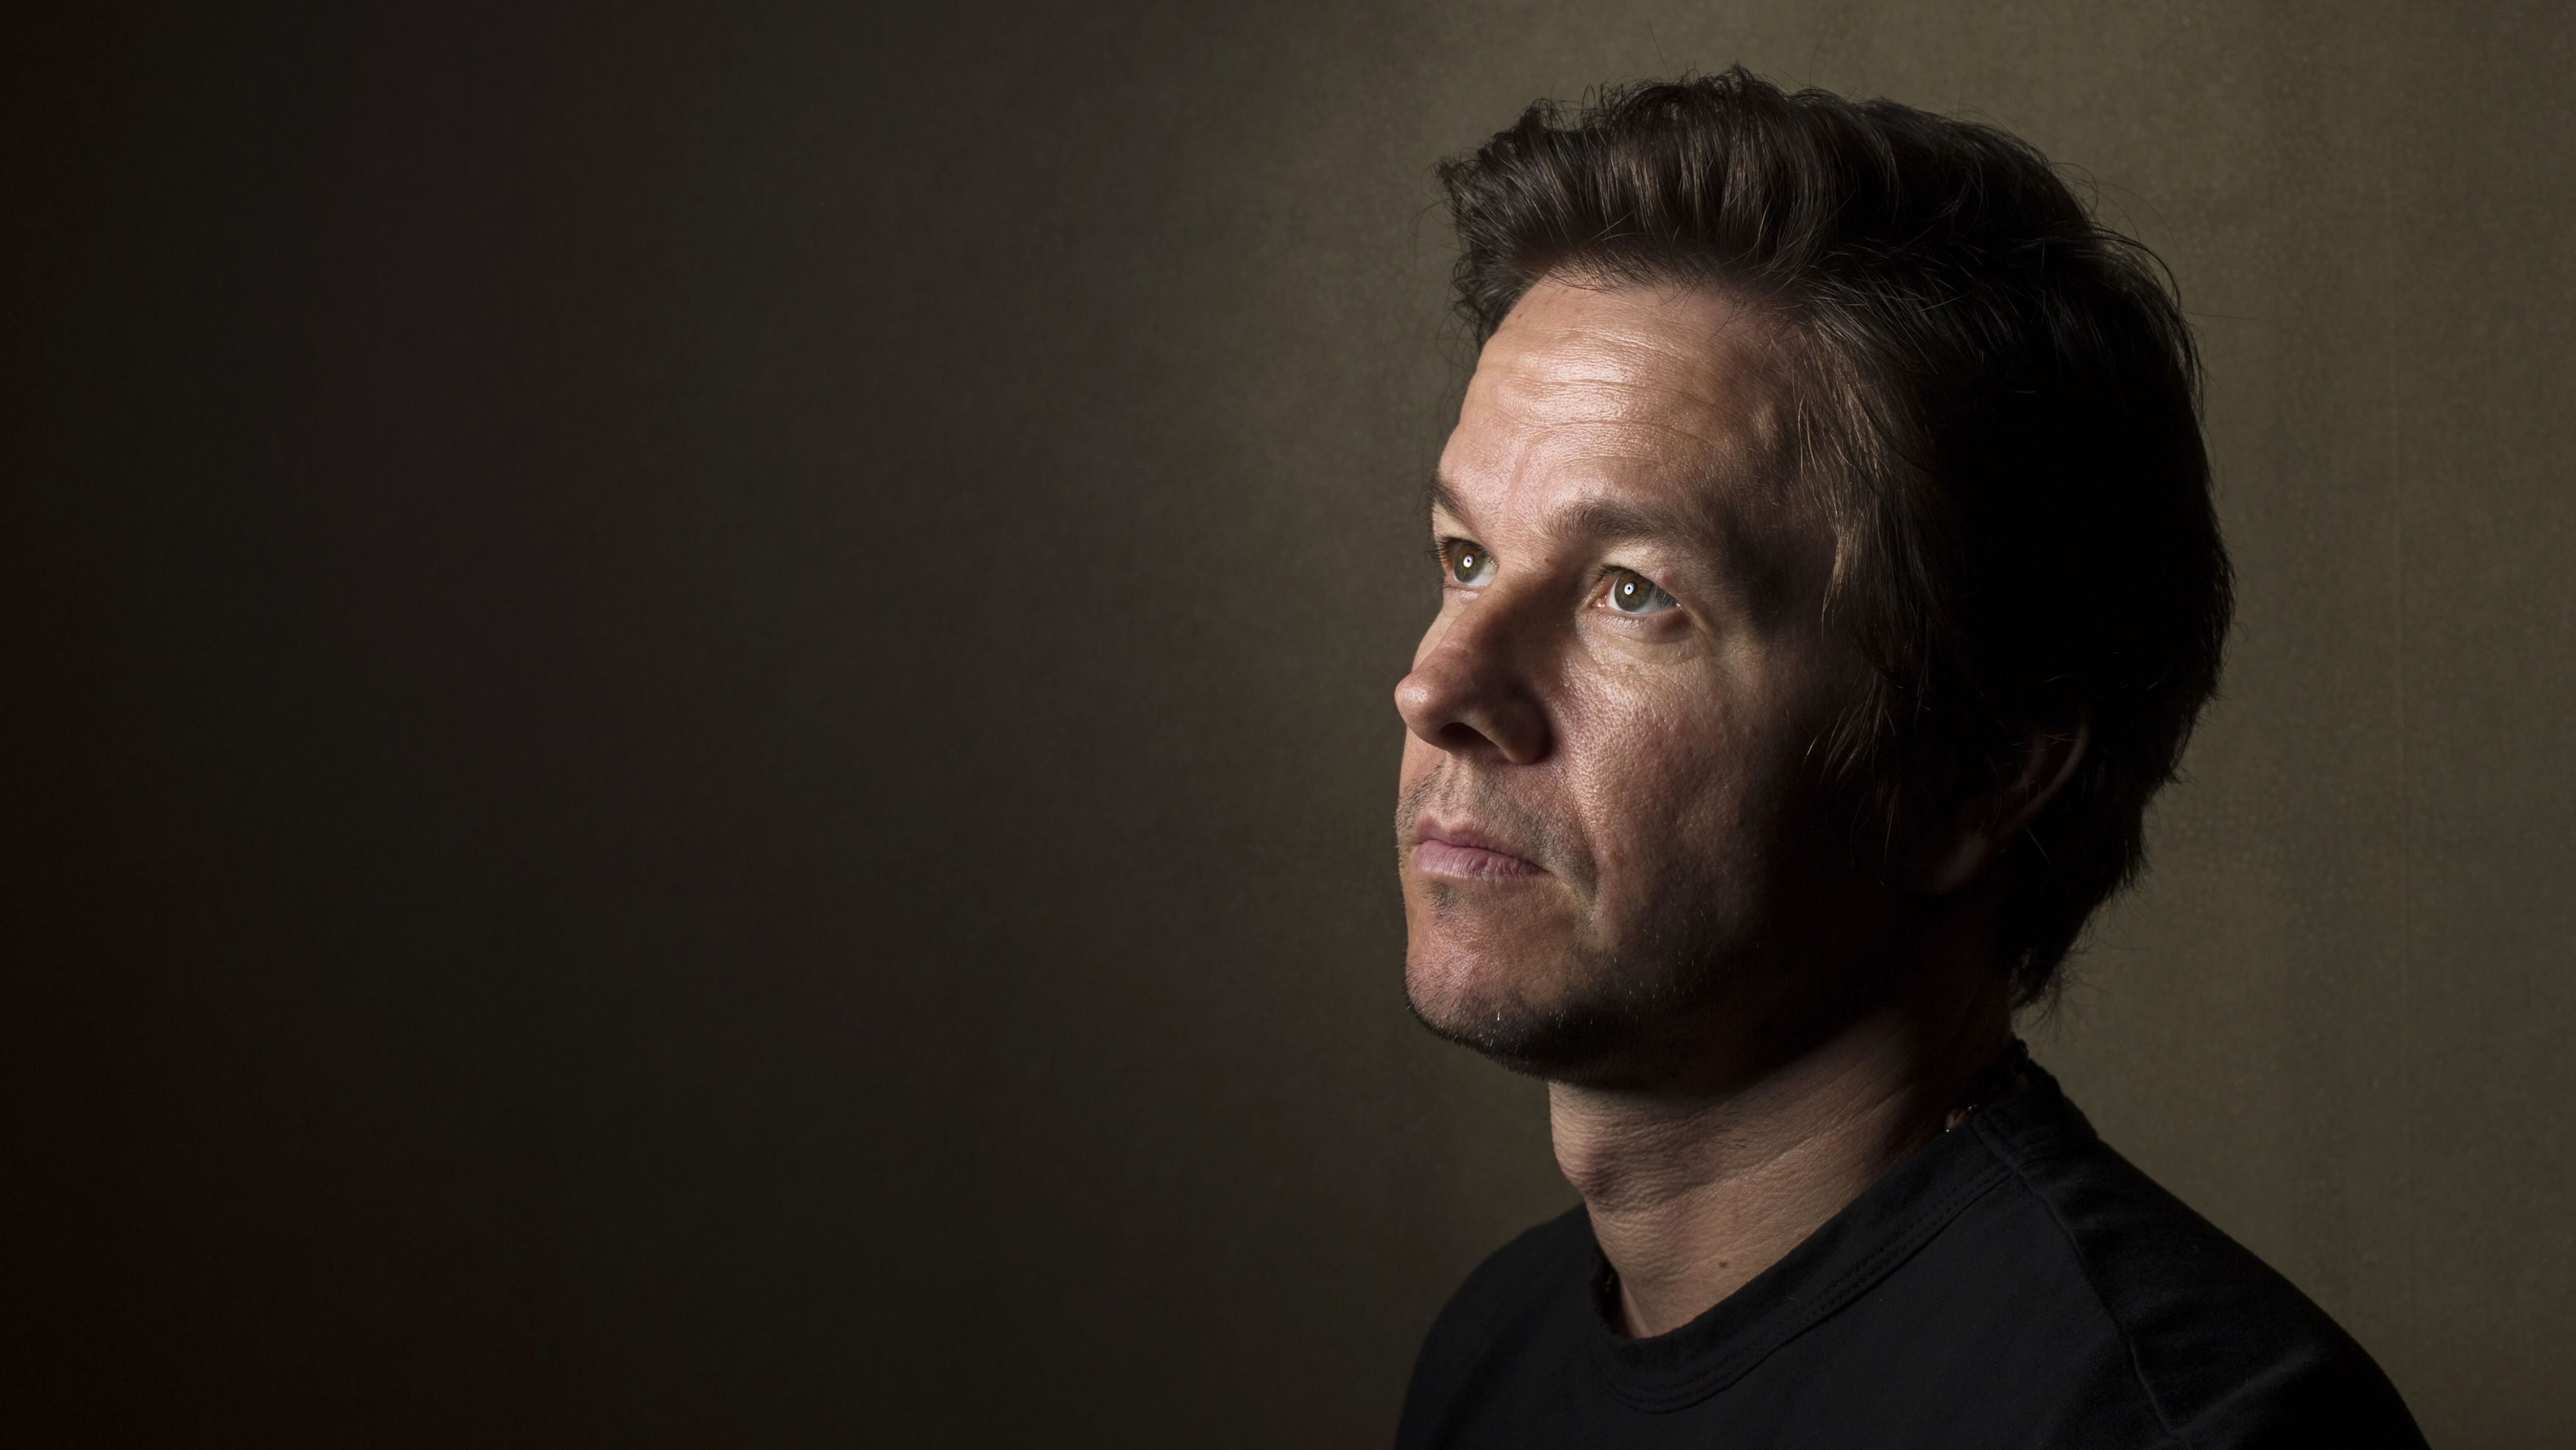 """Actor Mark Wahlberg poses for a portrait while promoting the film """"Lone Survivor"""" in New York December 5, 2013. The film is based on the memoir by former U.S. Navy SEAL Marcus Luttrell about the 2005 mission """"Operation Red Wings"""" in Afghanistan. REUTERS/Lucas Jackso"""